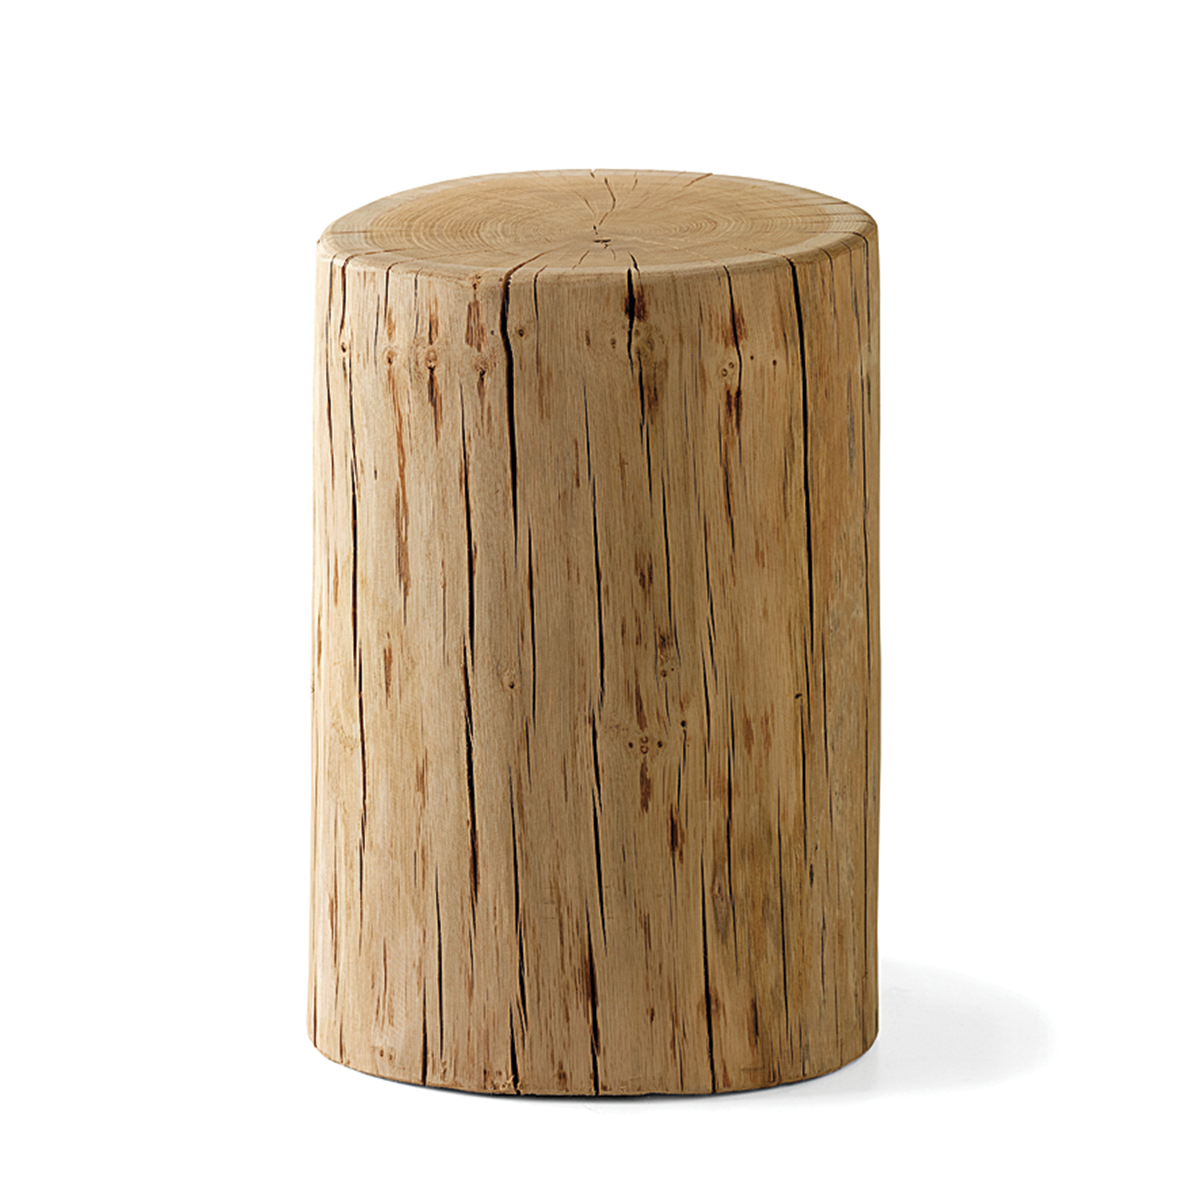 sostanza natural chair by essence wood lovethesign